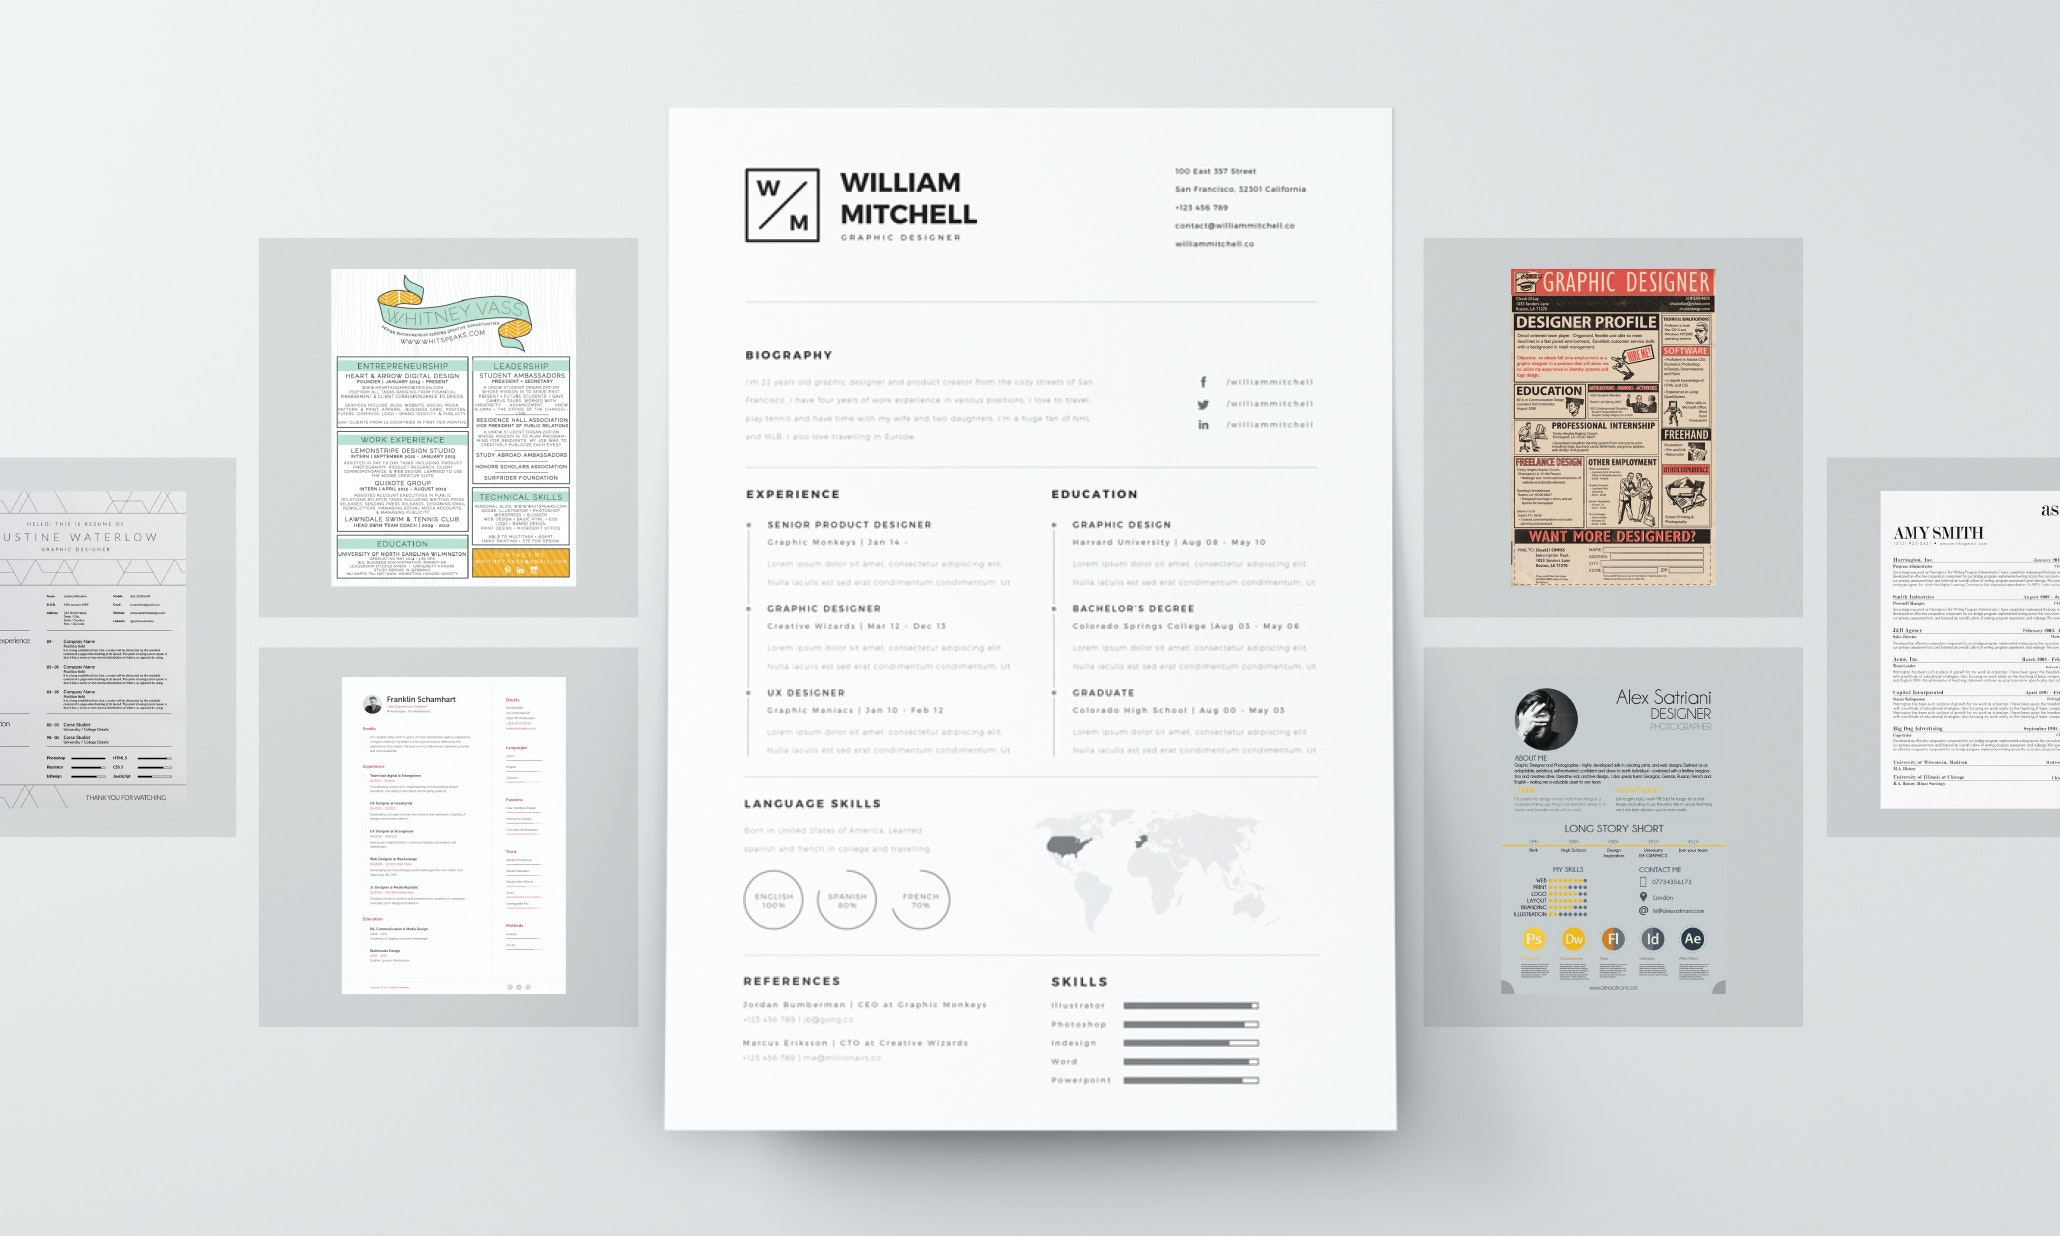 Resume Design Principles That Will Get You Hired  Designs